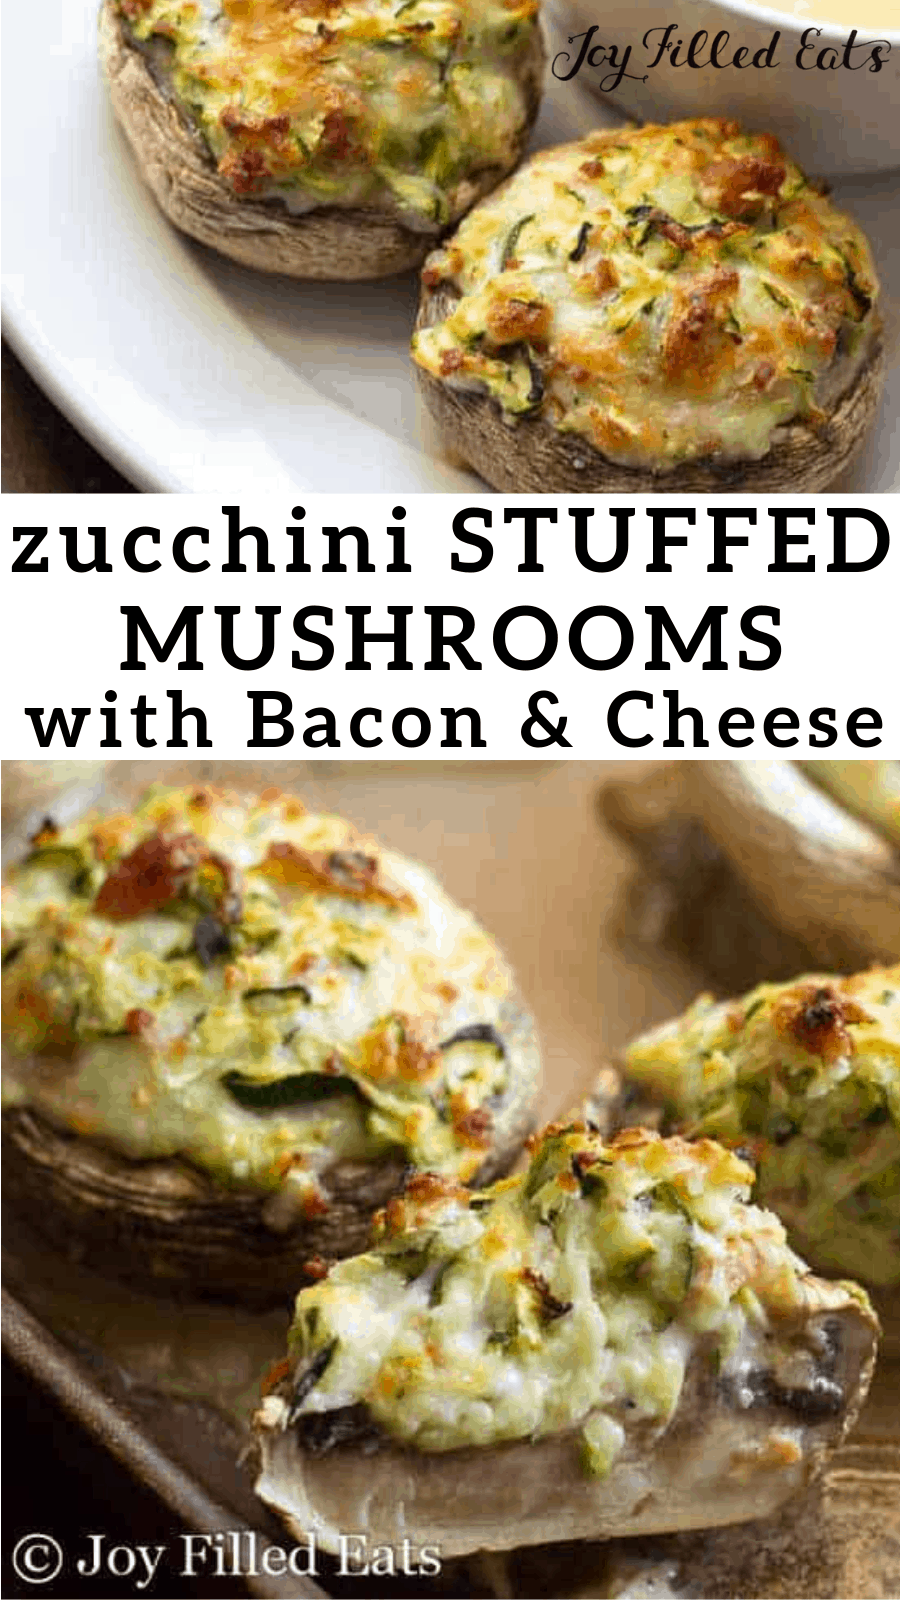 Cheese Stuffed Mushrooms with Bacon - Low Carb, Keto, Gluten-Free, Grain-Free, THM S - these are fi